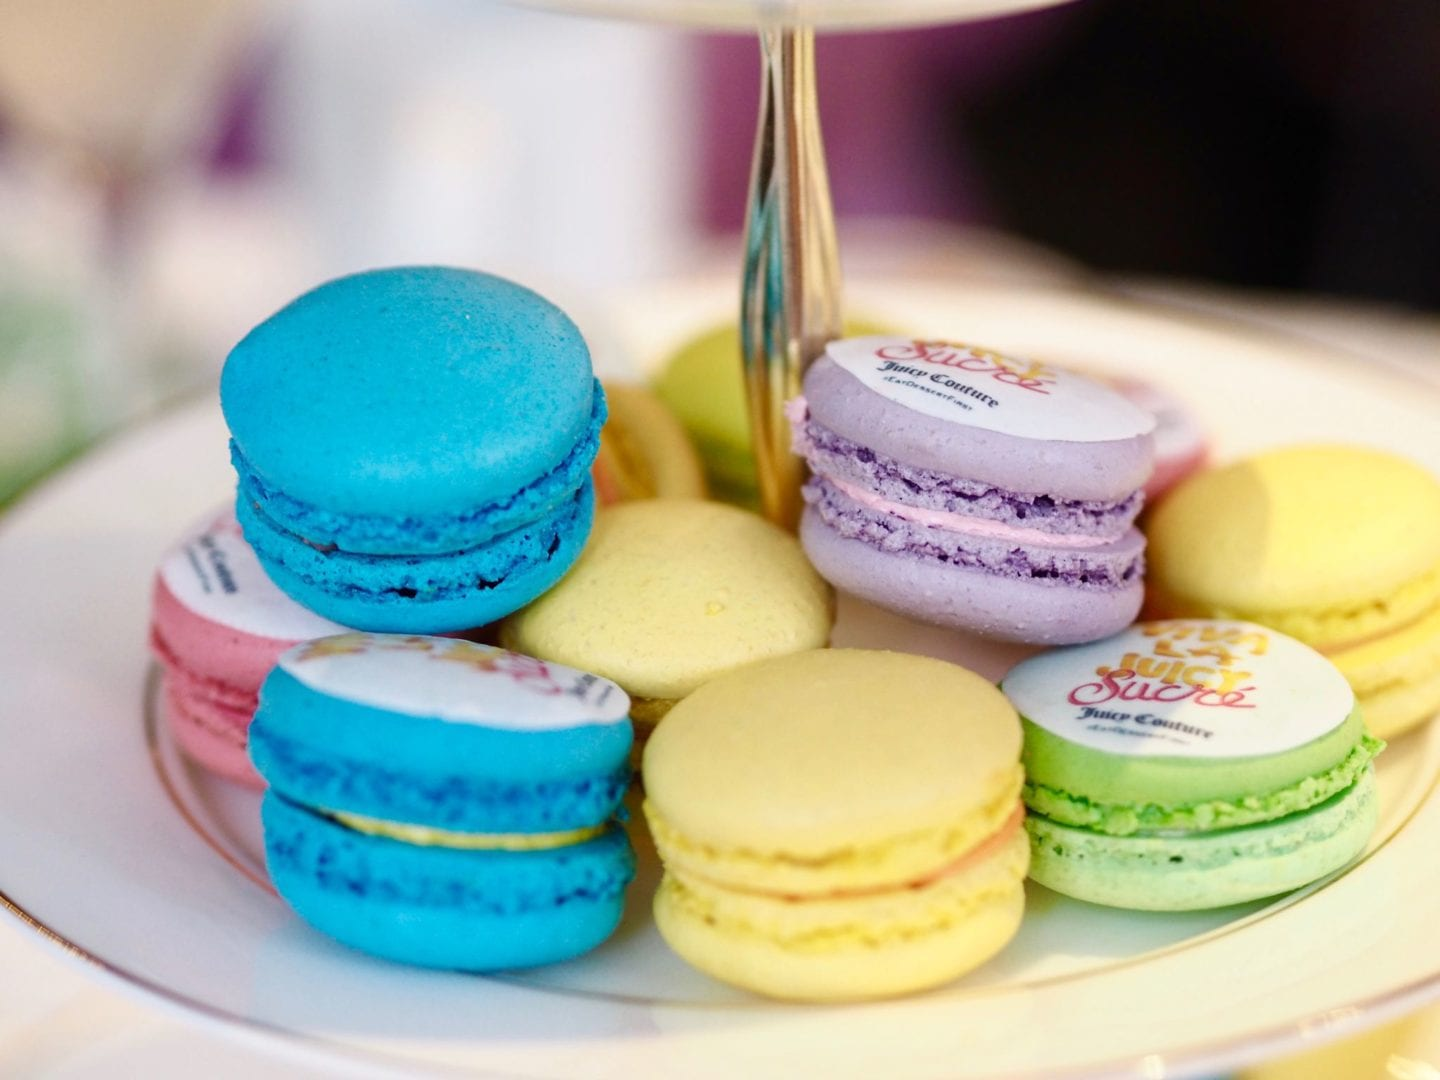 rainbow-macaroons-juicy-couture-sucre-fragrance-launch